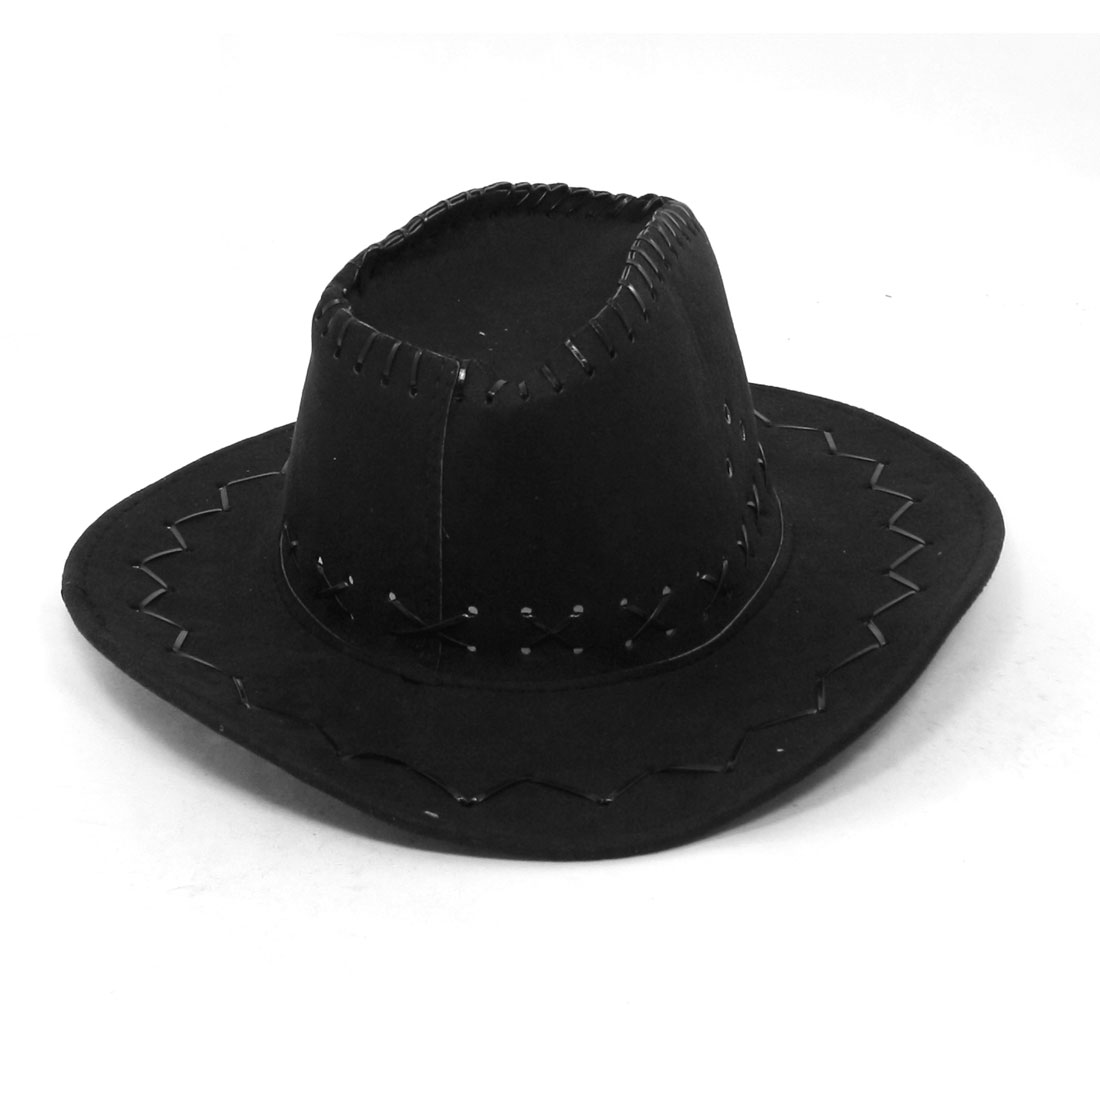 Adjustable Chin Strap Faux Leather Cowboy Hat Black for Man